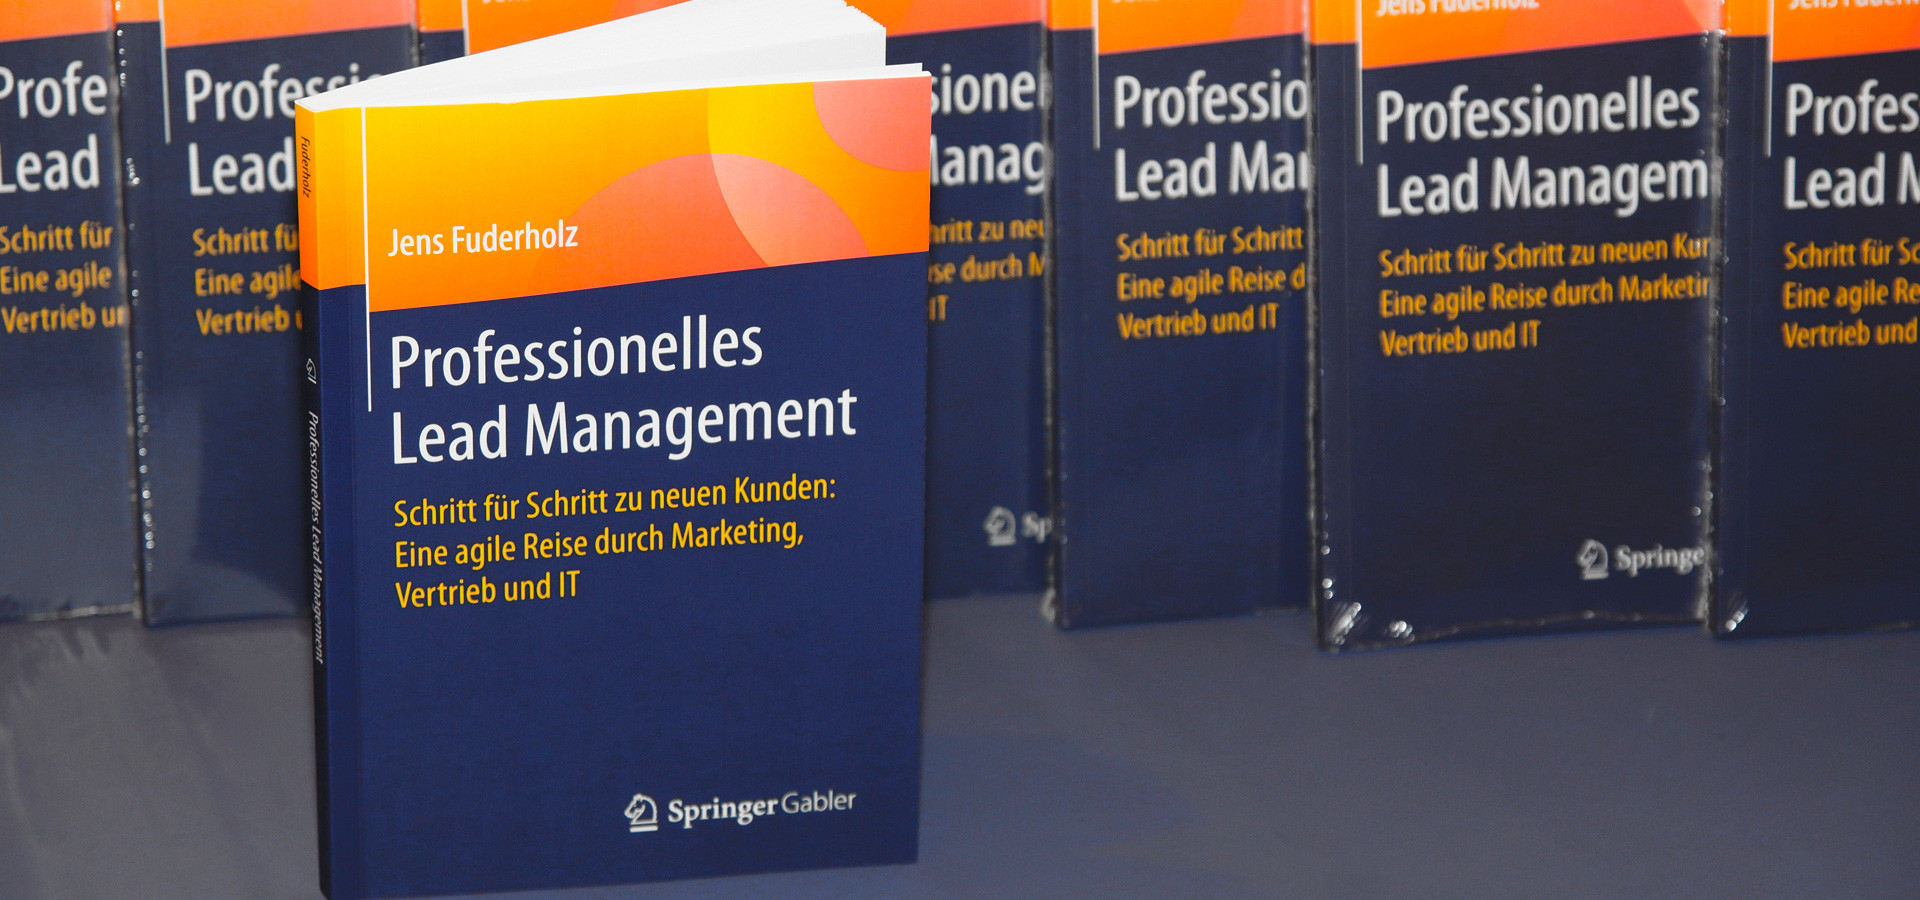 Business Roman: Professionelles Lead Management von Jens Fuderholz